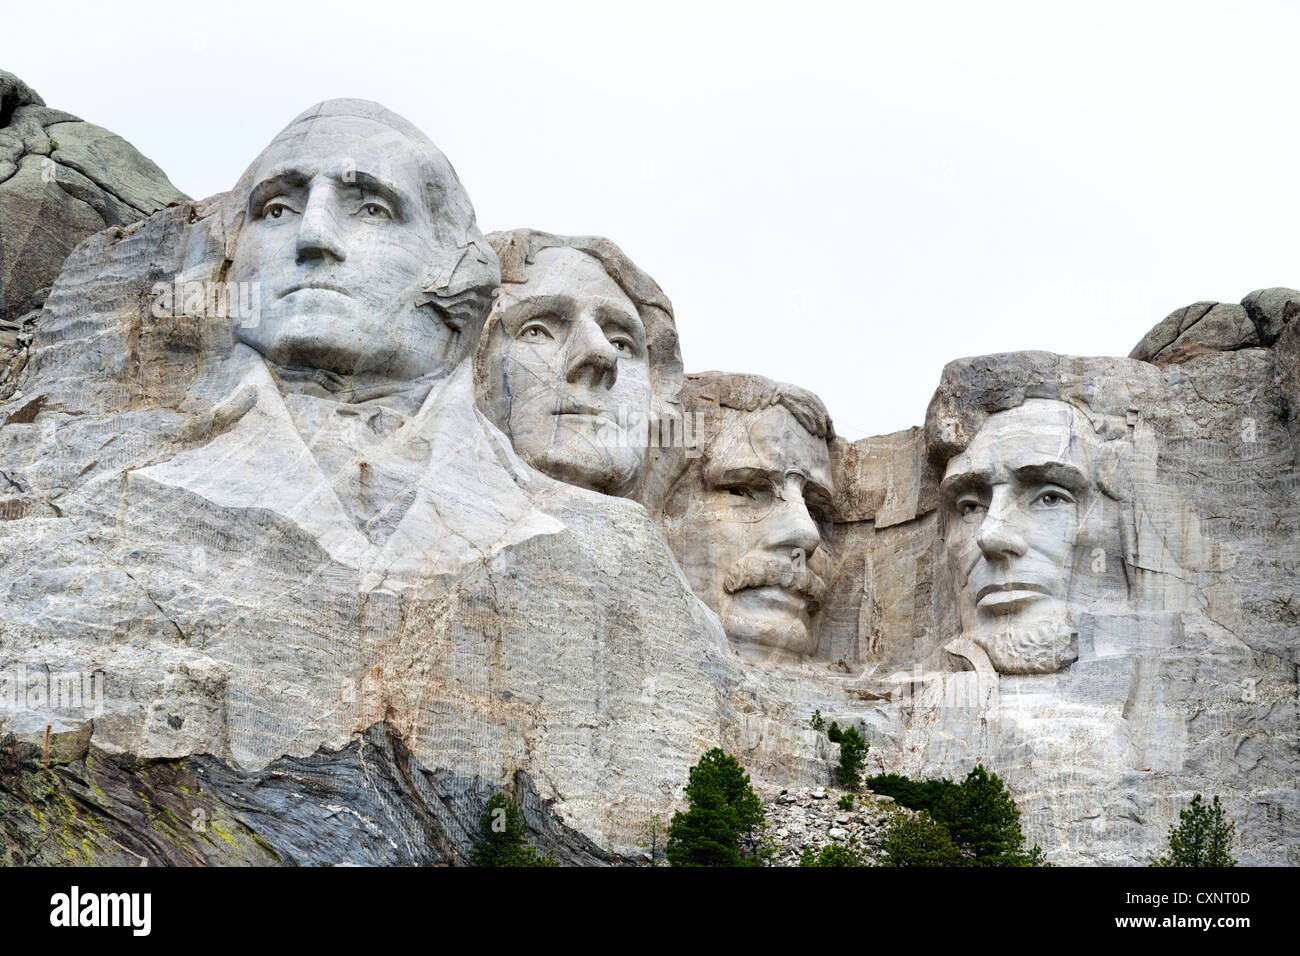 Faces Of The Four Presidents At Mount Rushmore National